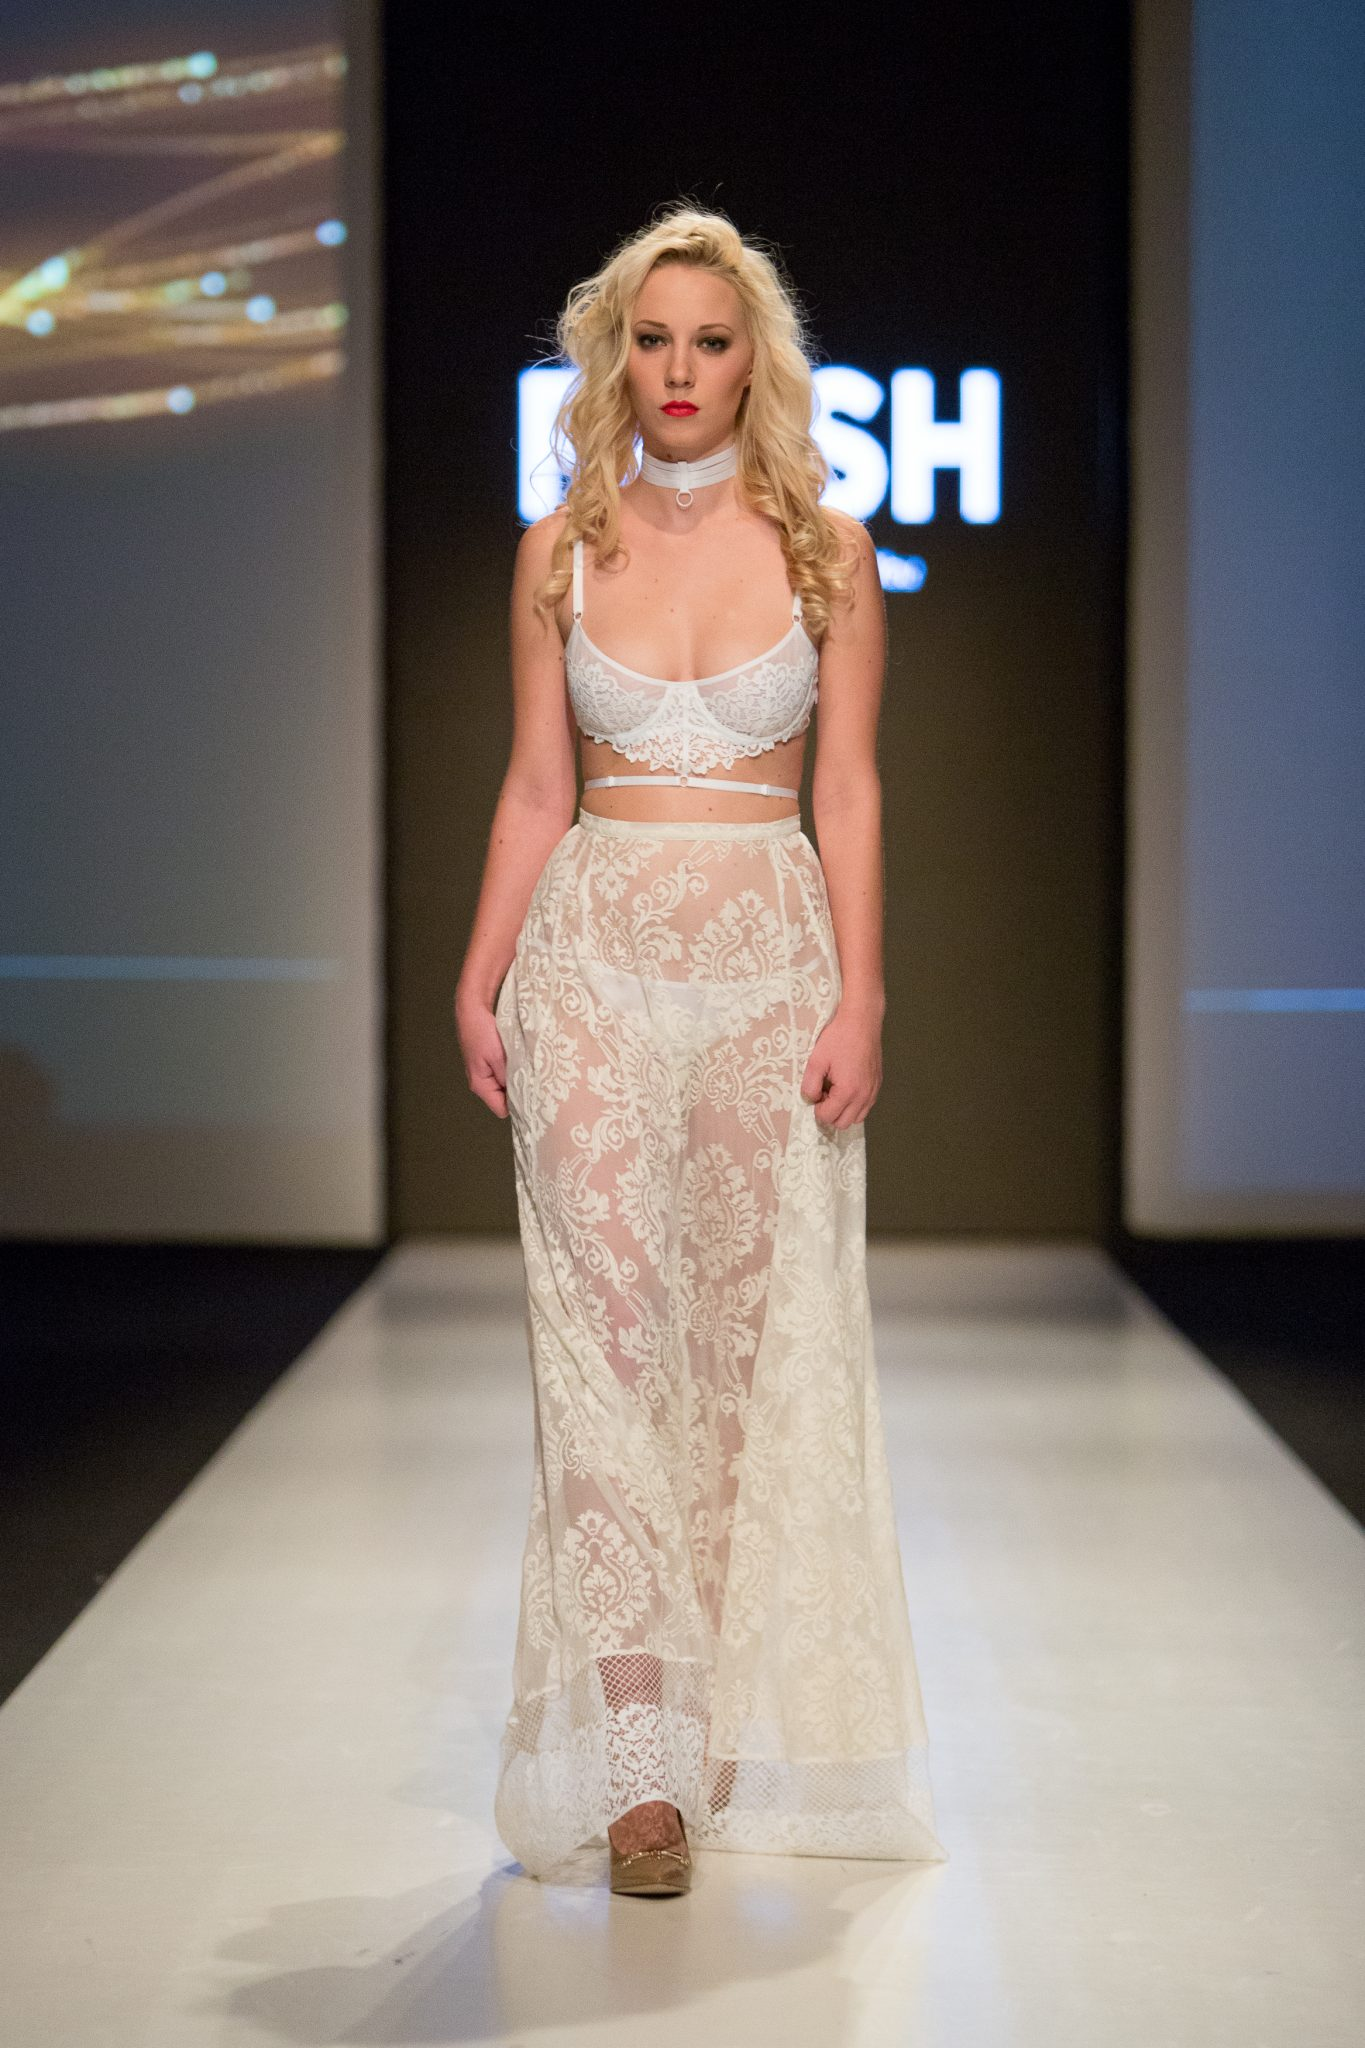 Flash You and Me Capsule Collection In Riga Fashion Week's Lingerie Show